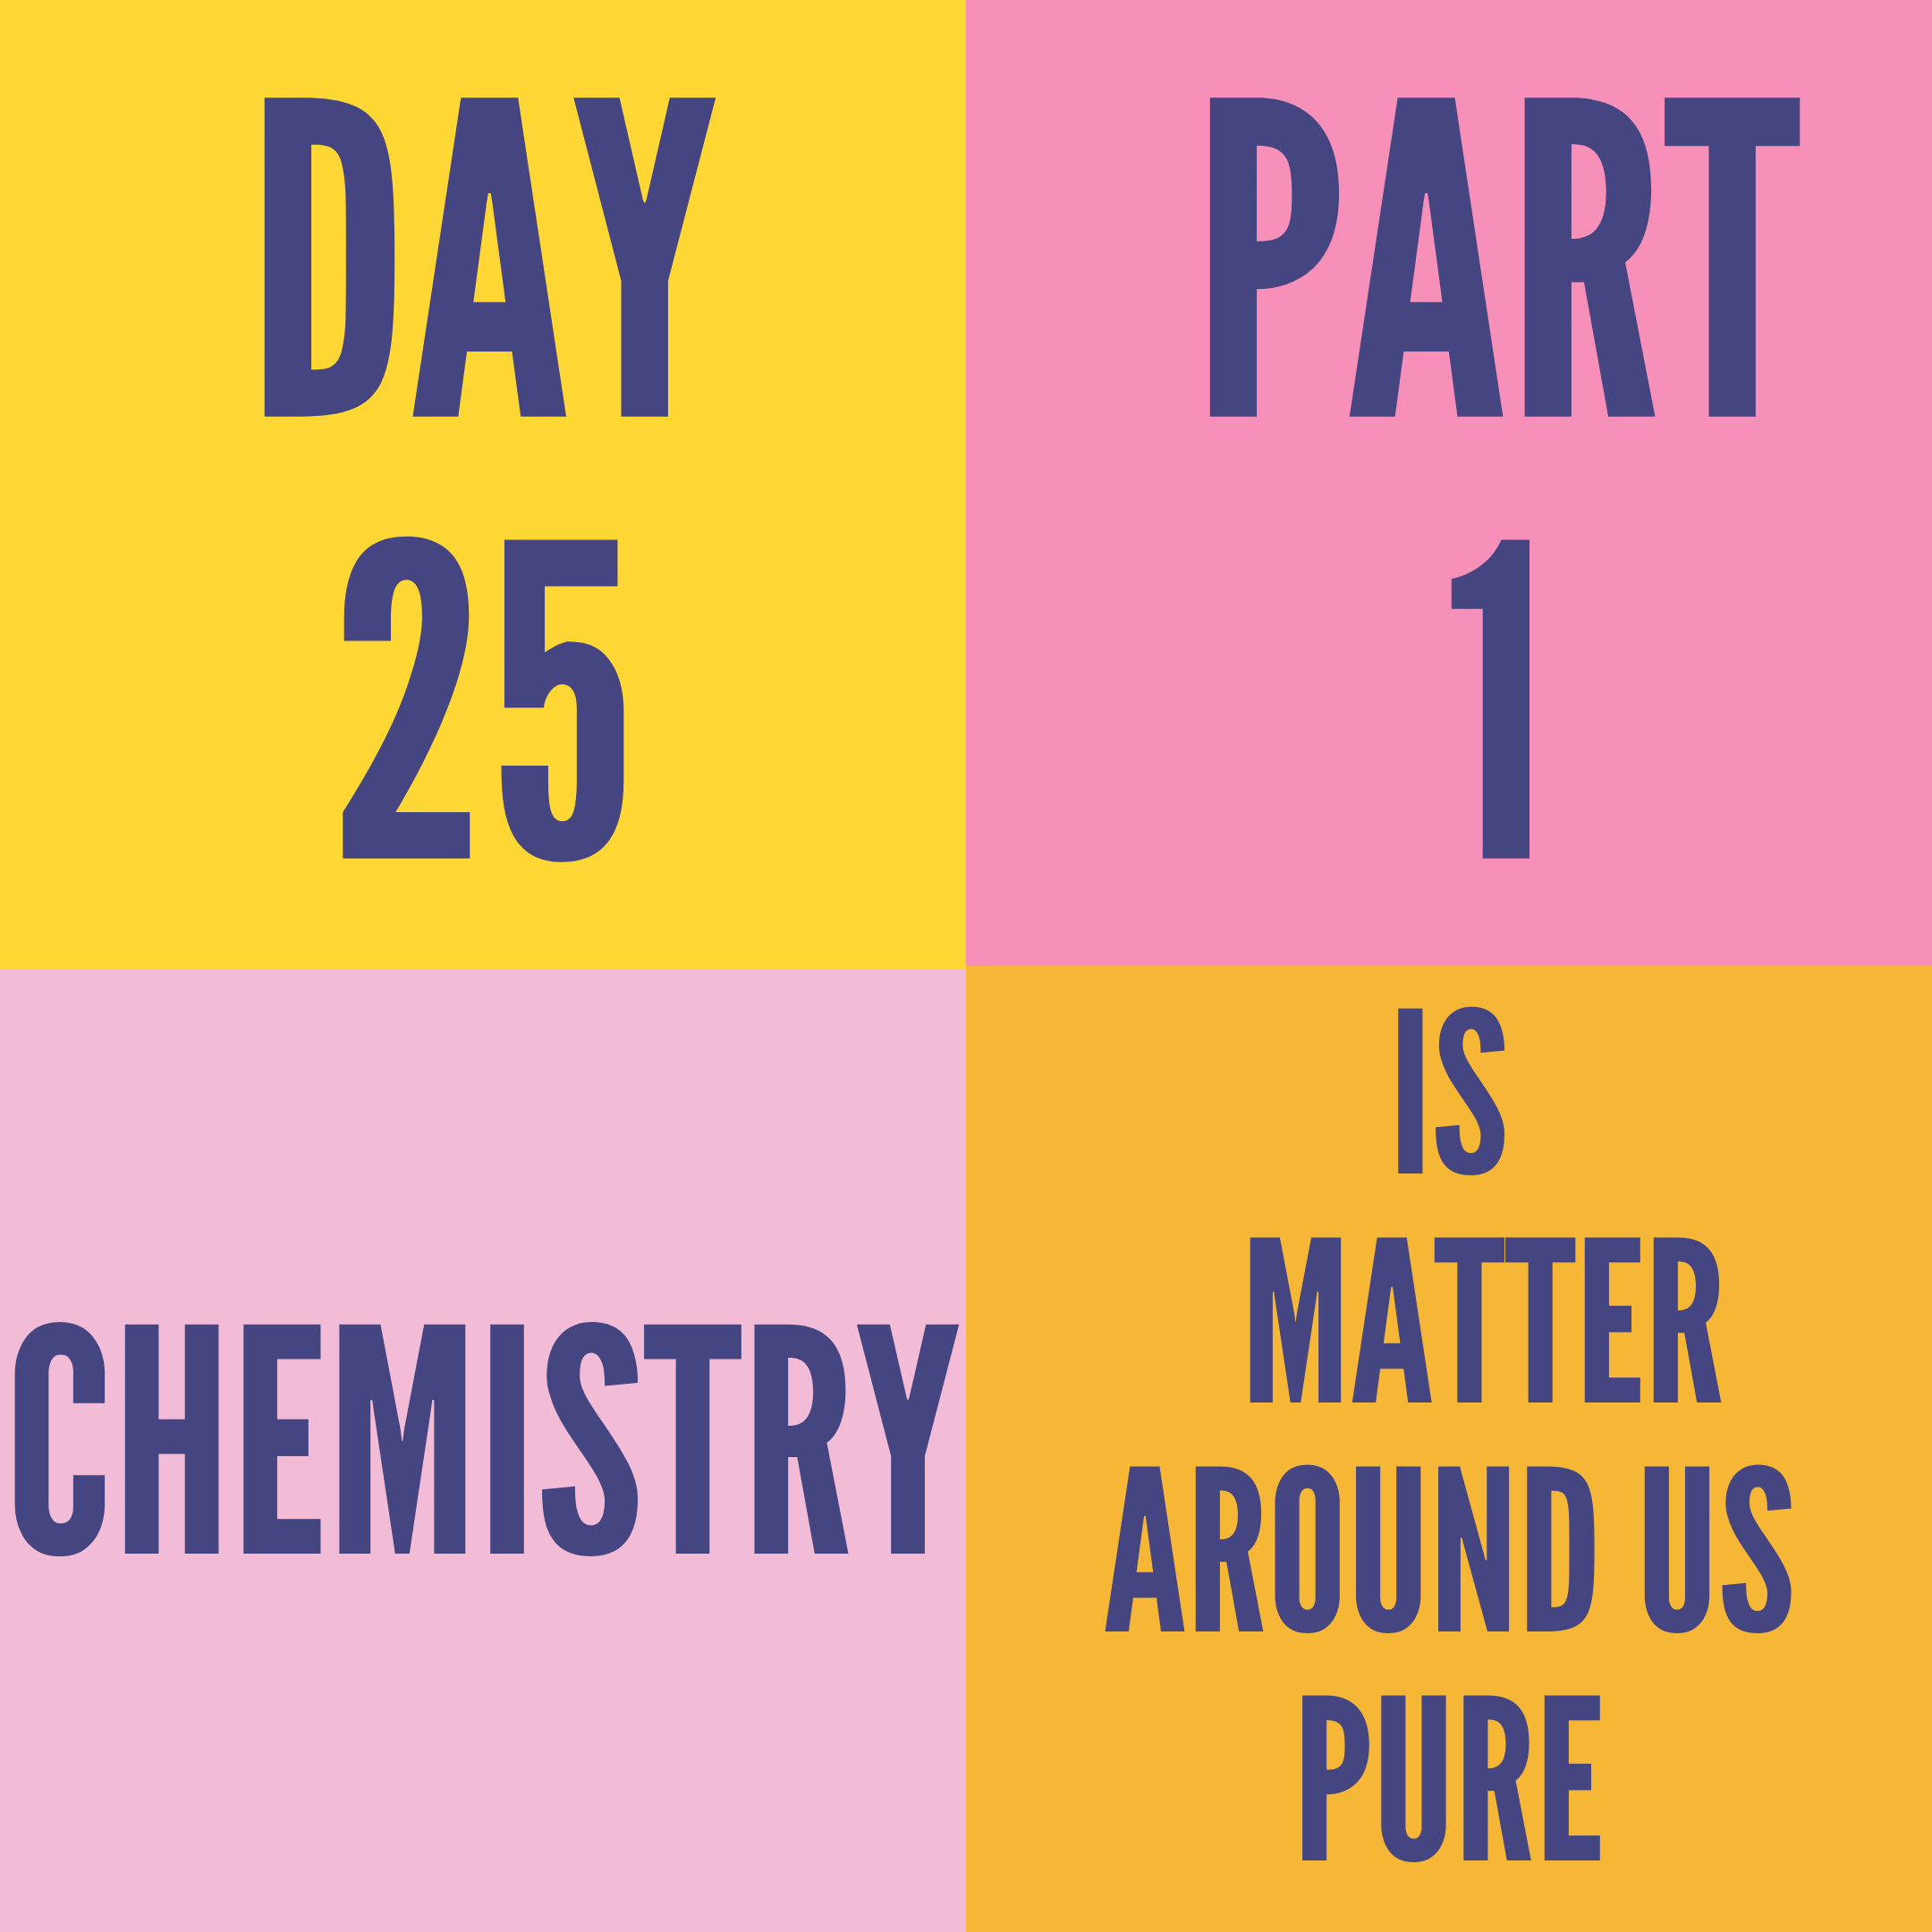 DAY-25 PART-1 IS MATTER AROUND US PURE